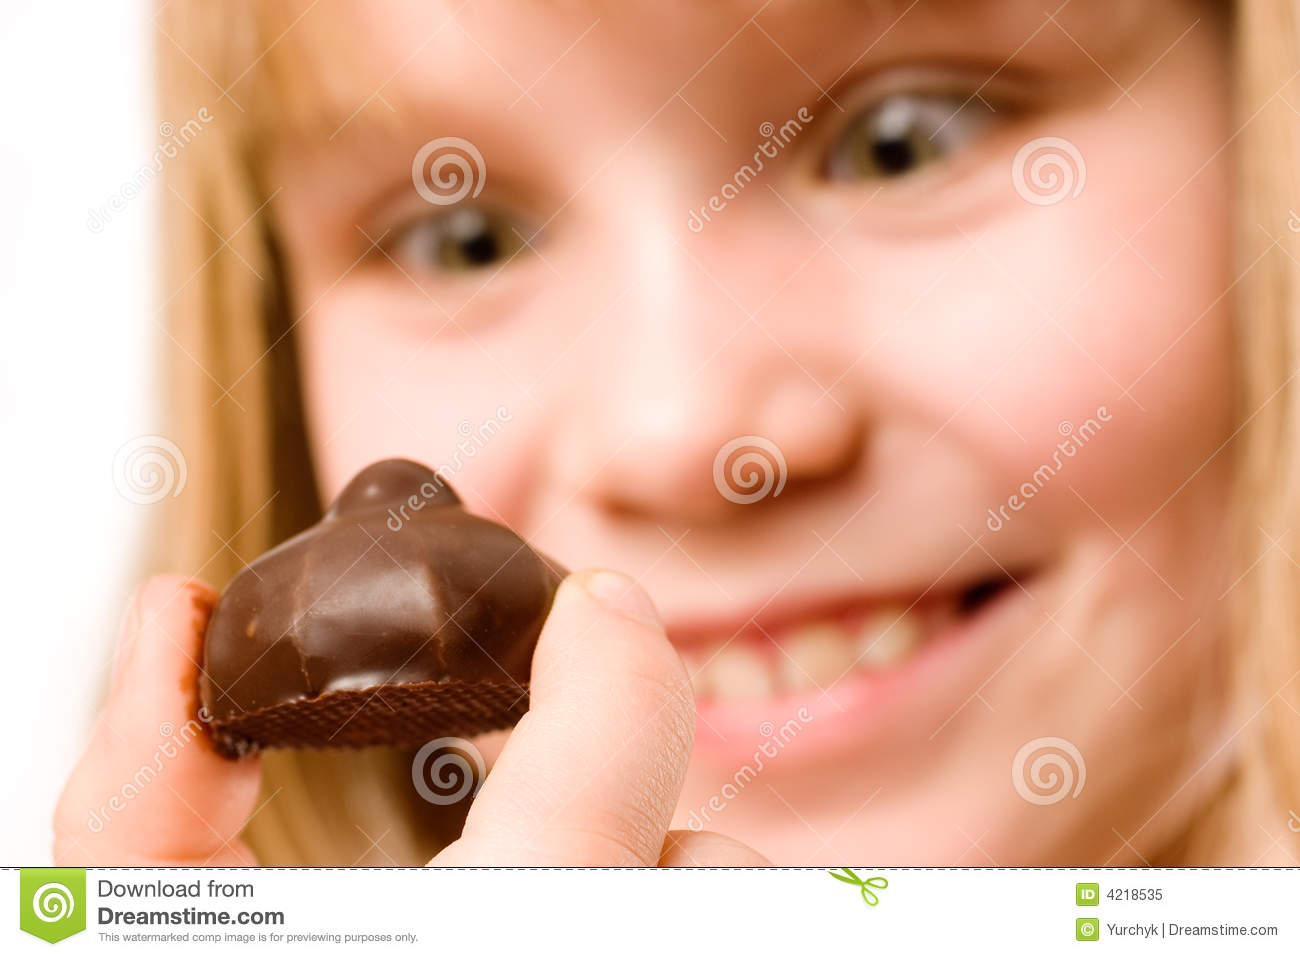 how to draw a person eating chocolate